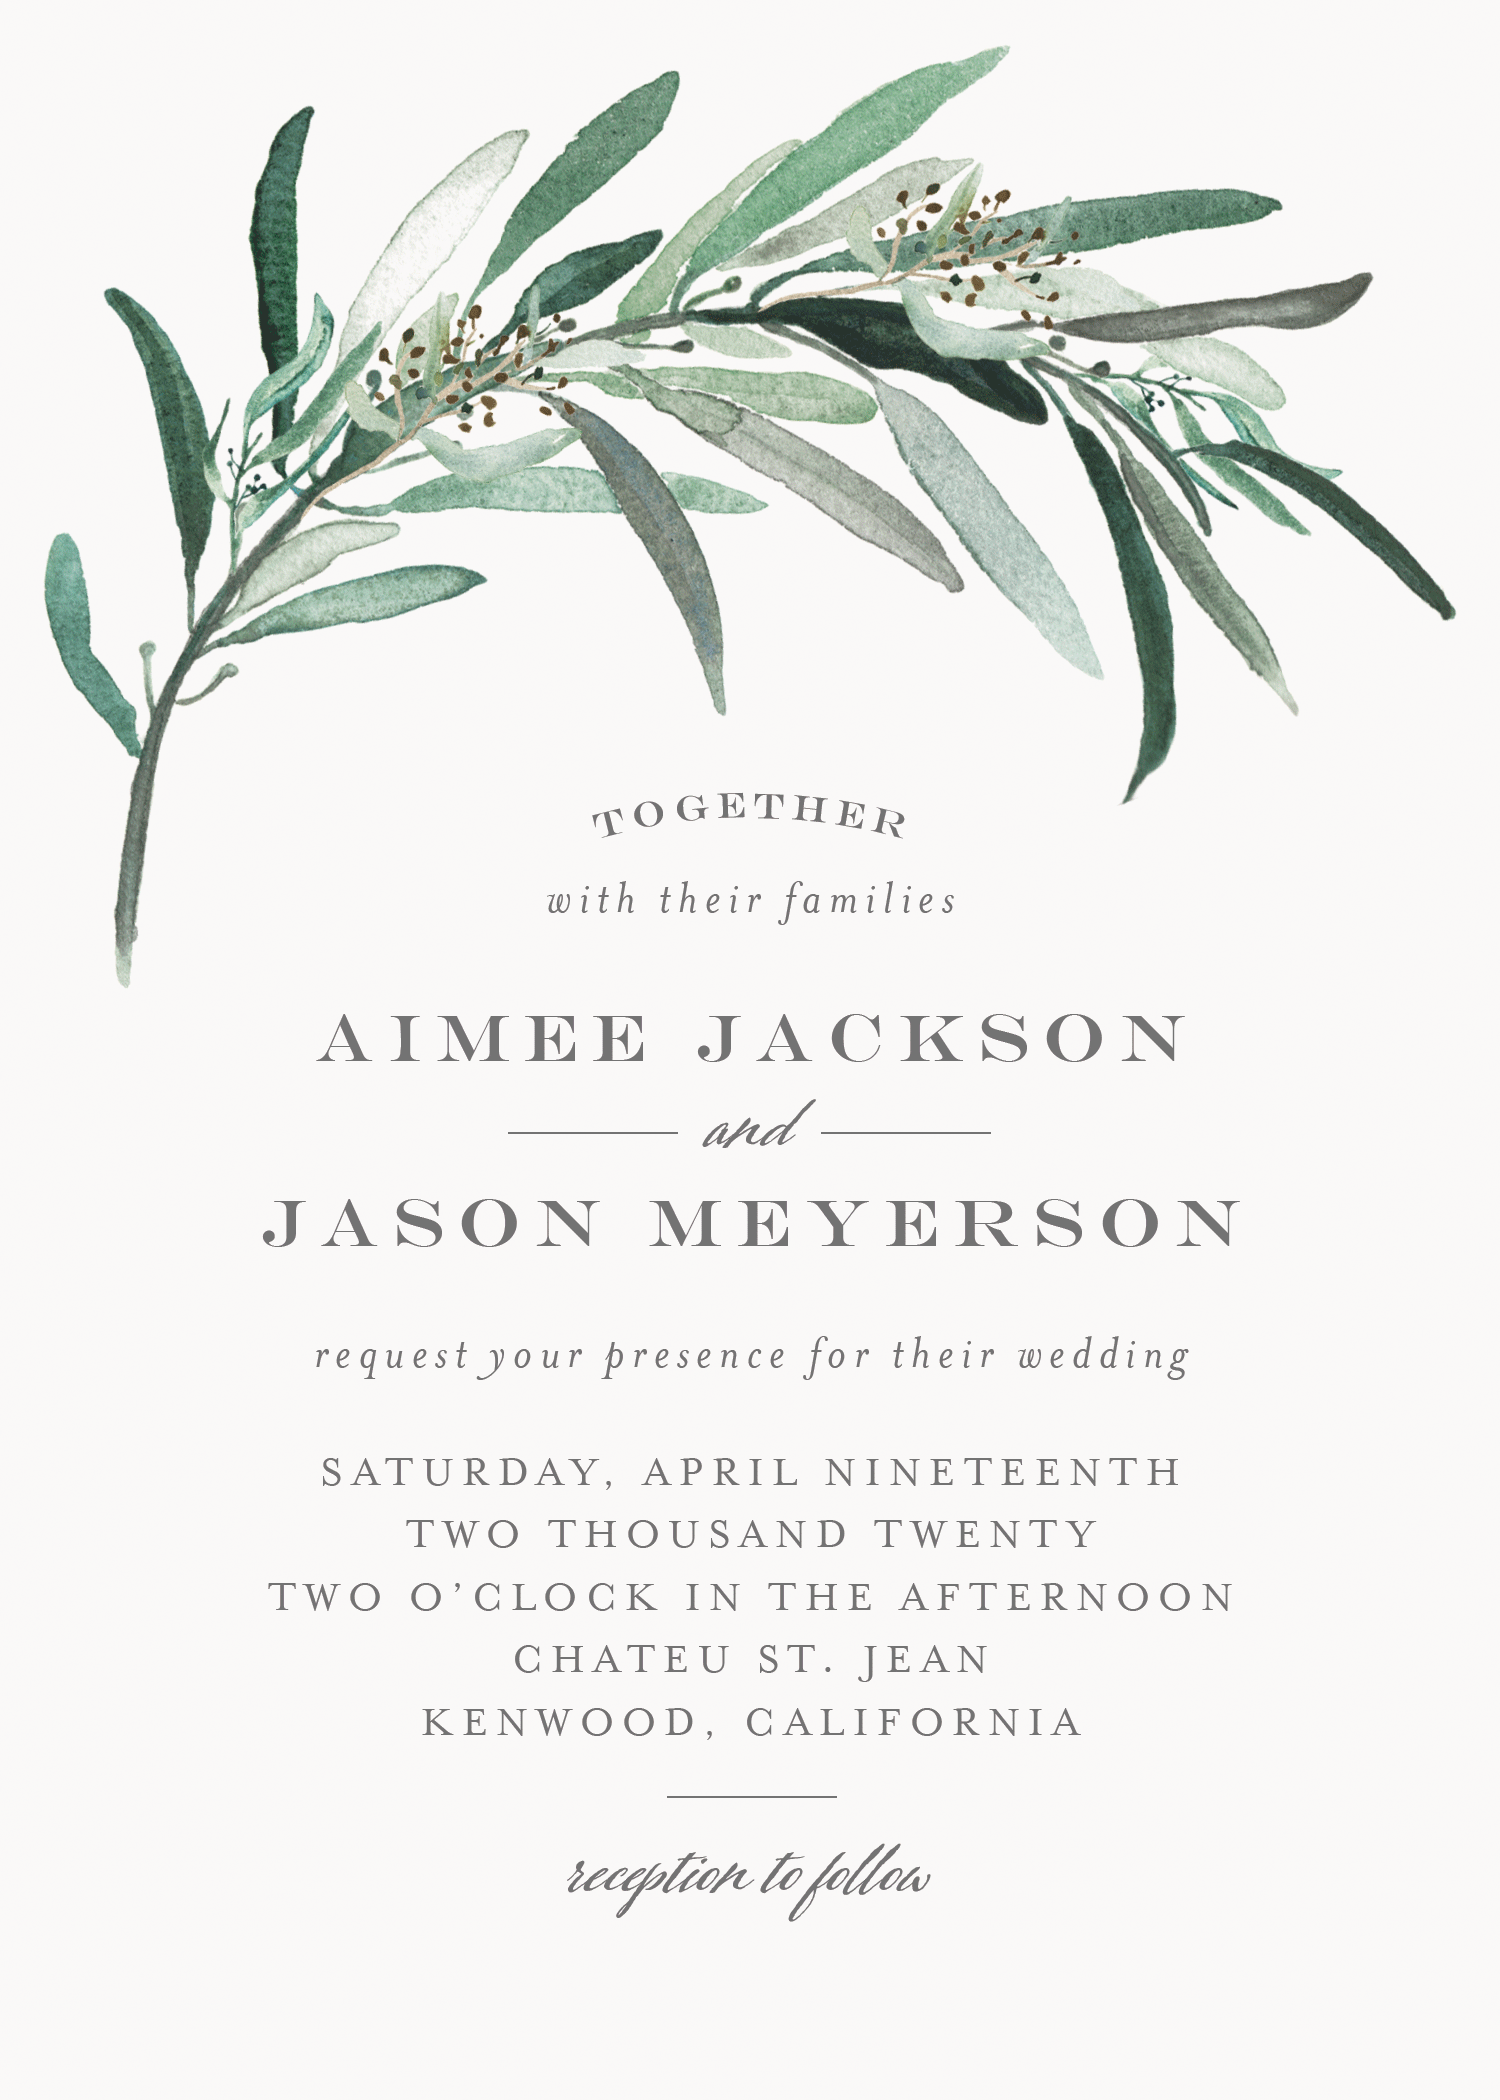 Customizable wedding invitation featuring a eucalyptus branch arching over your names and wedding details in modern fonts.